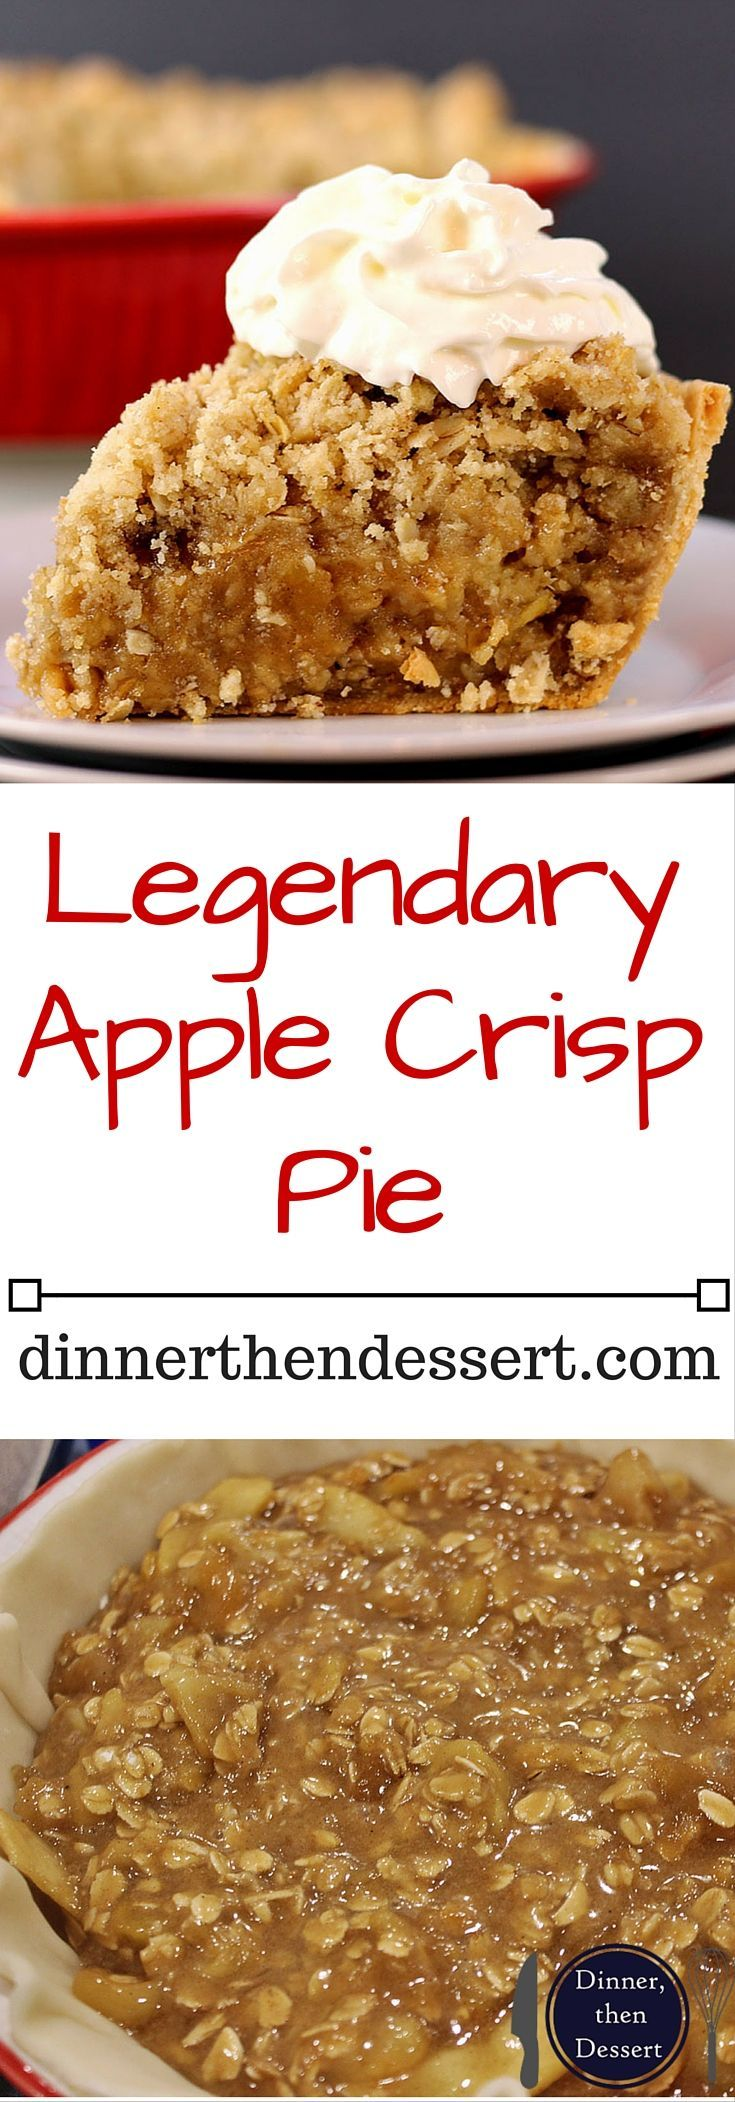 17 best ideas about apple crisp pie on pinterest apple for Best dessert recipes in the world